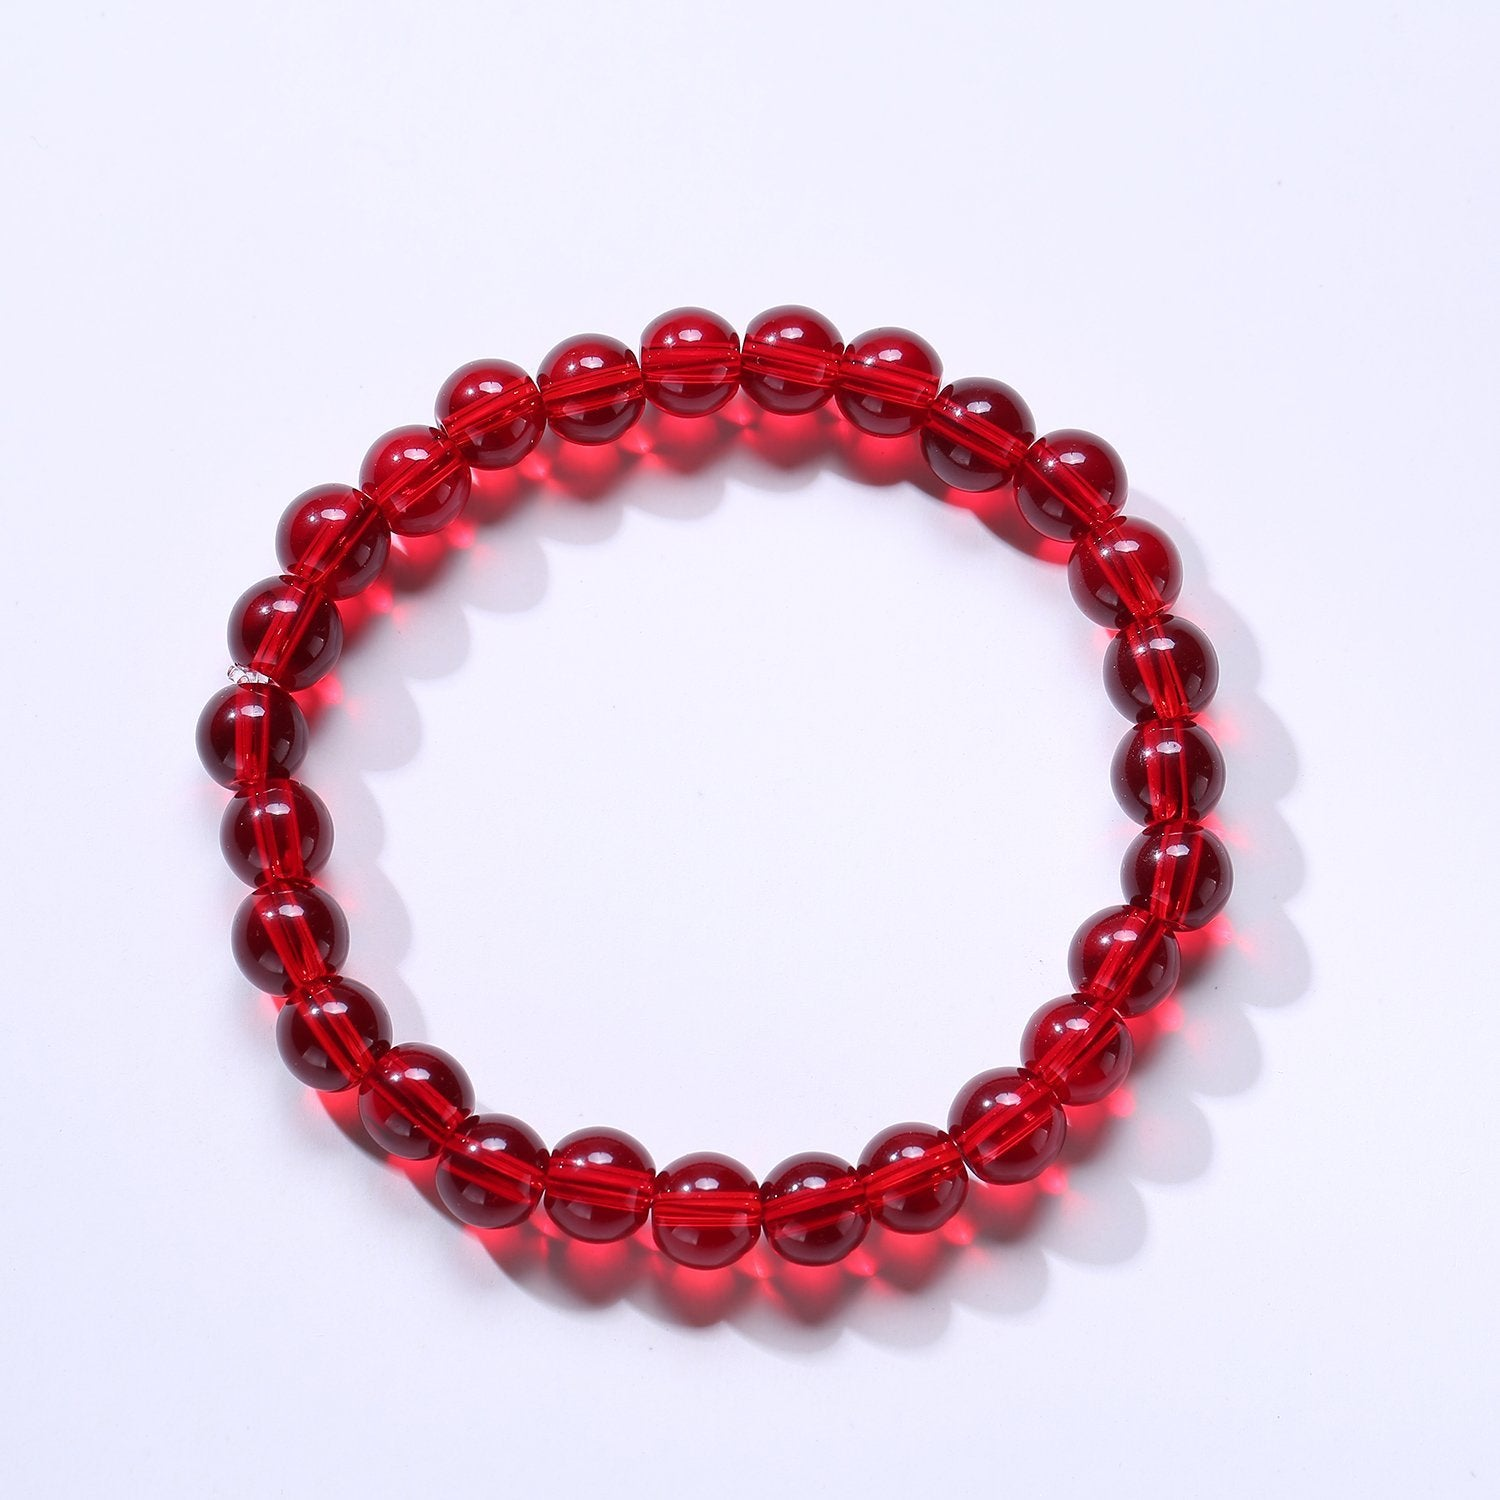 sauro buy for garnet minisphera bracelet red